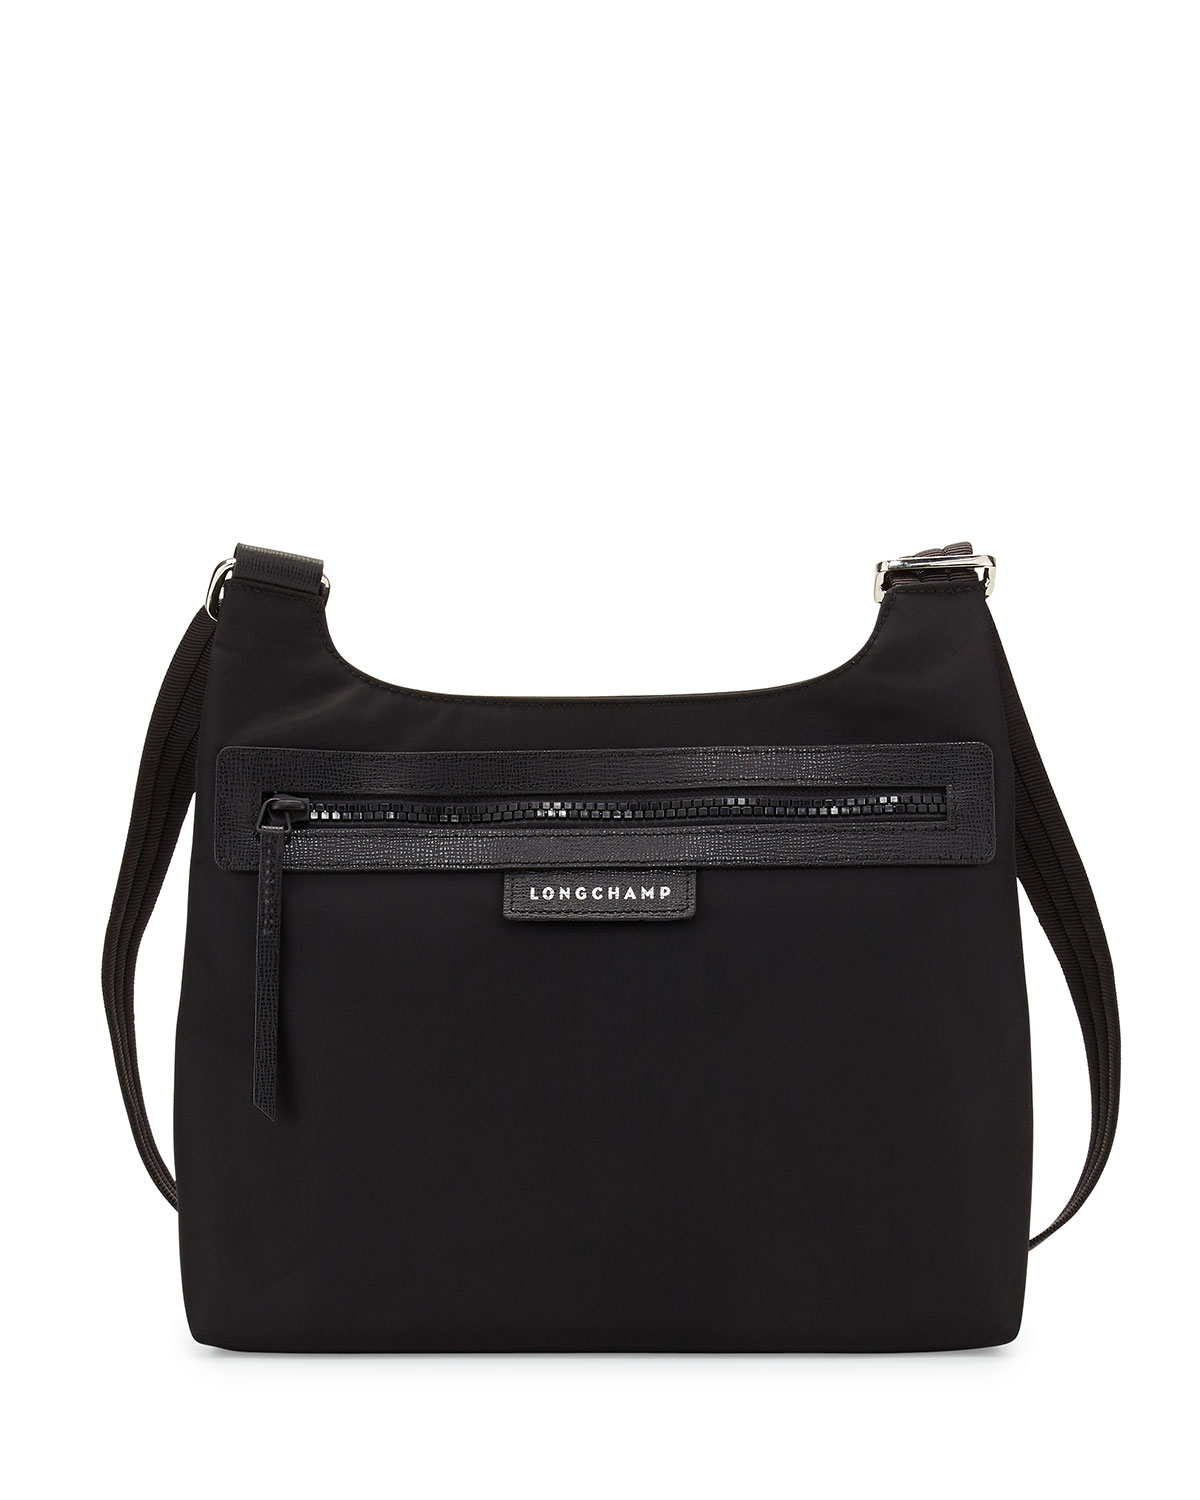 new product d19af 5647f Longchamp Le Pliage Neo Crossbody Bag, Black